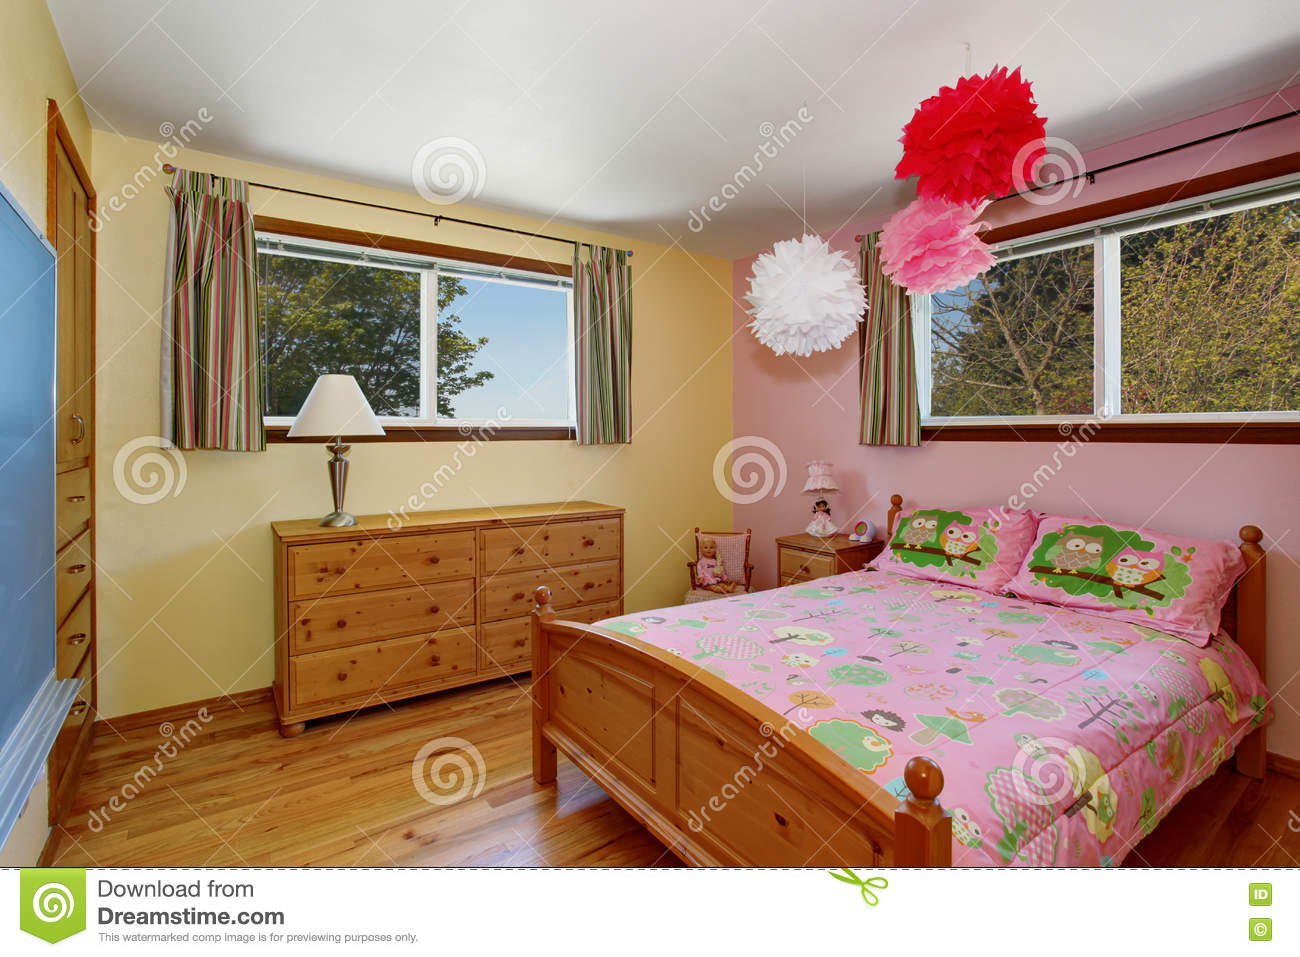 adorable girls bedroom interior with hardwood floor and pink wall rh dreamstime com